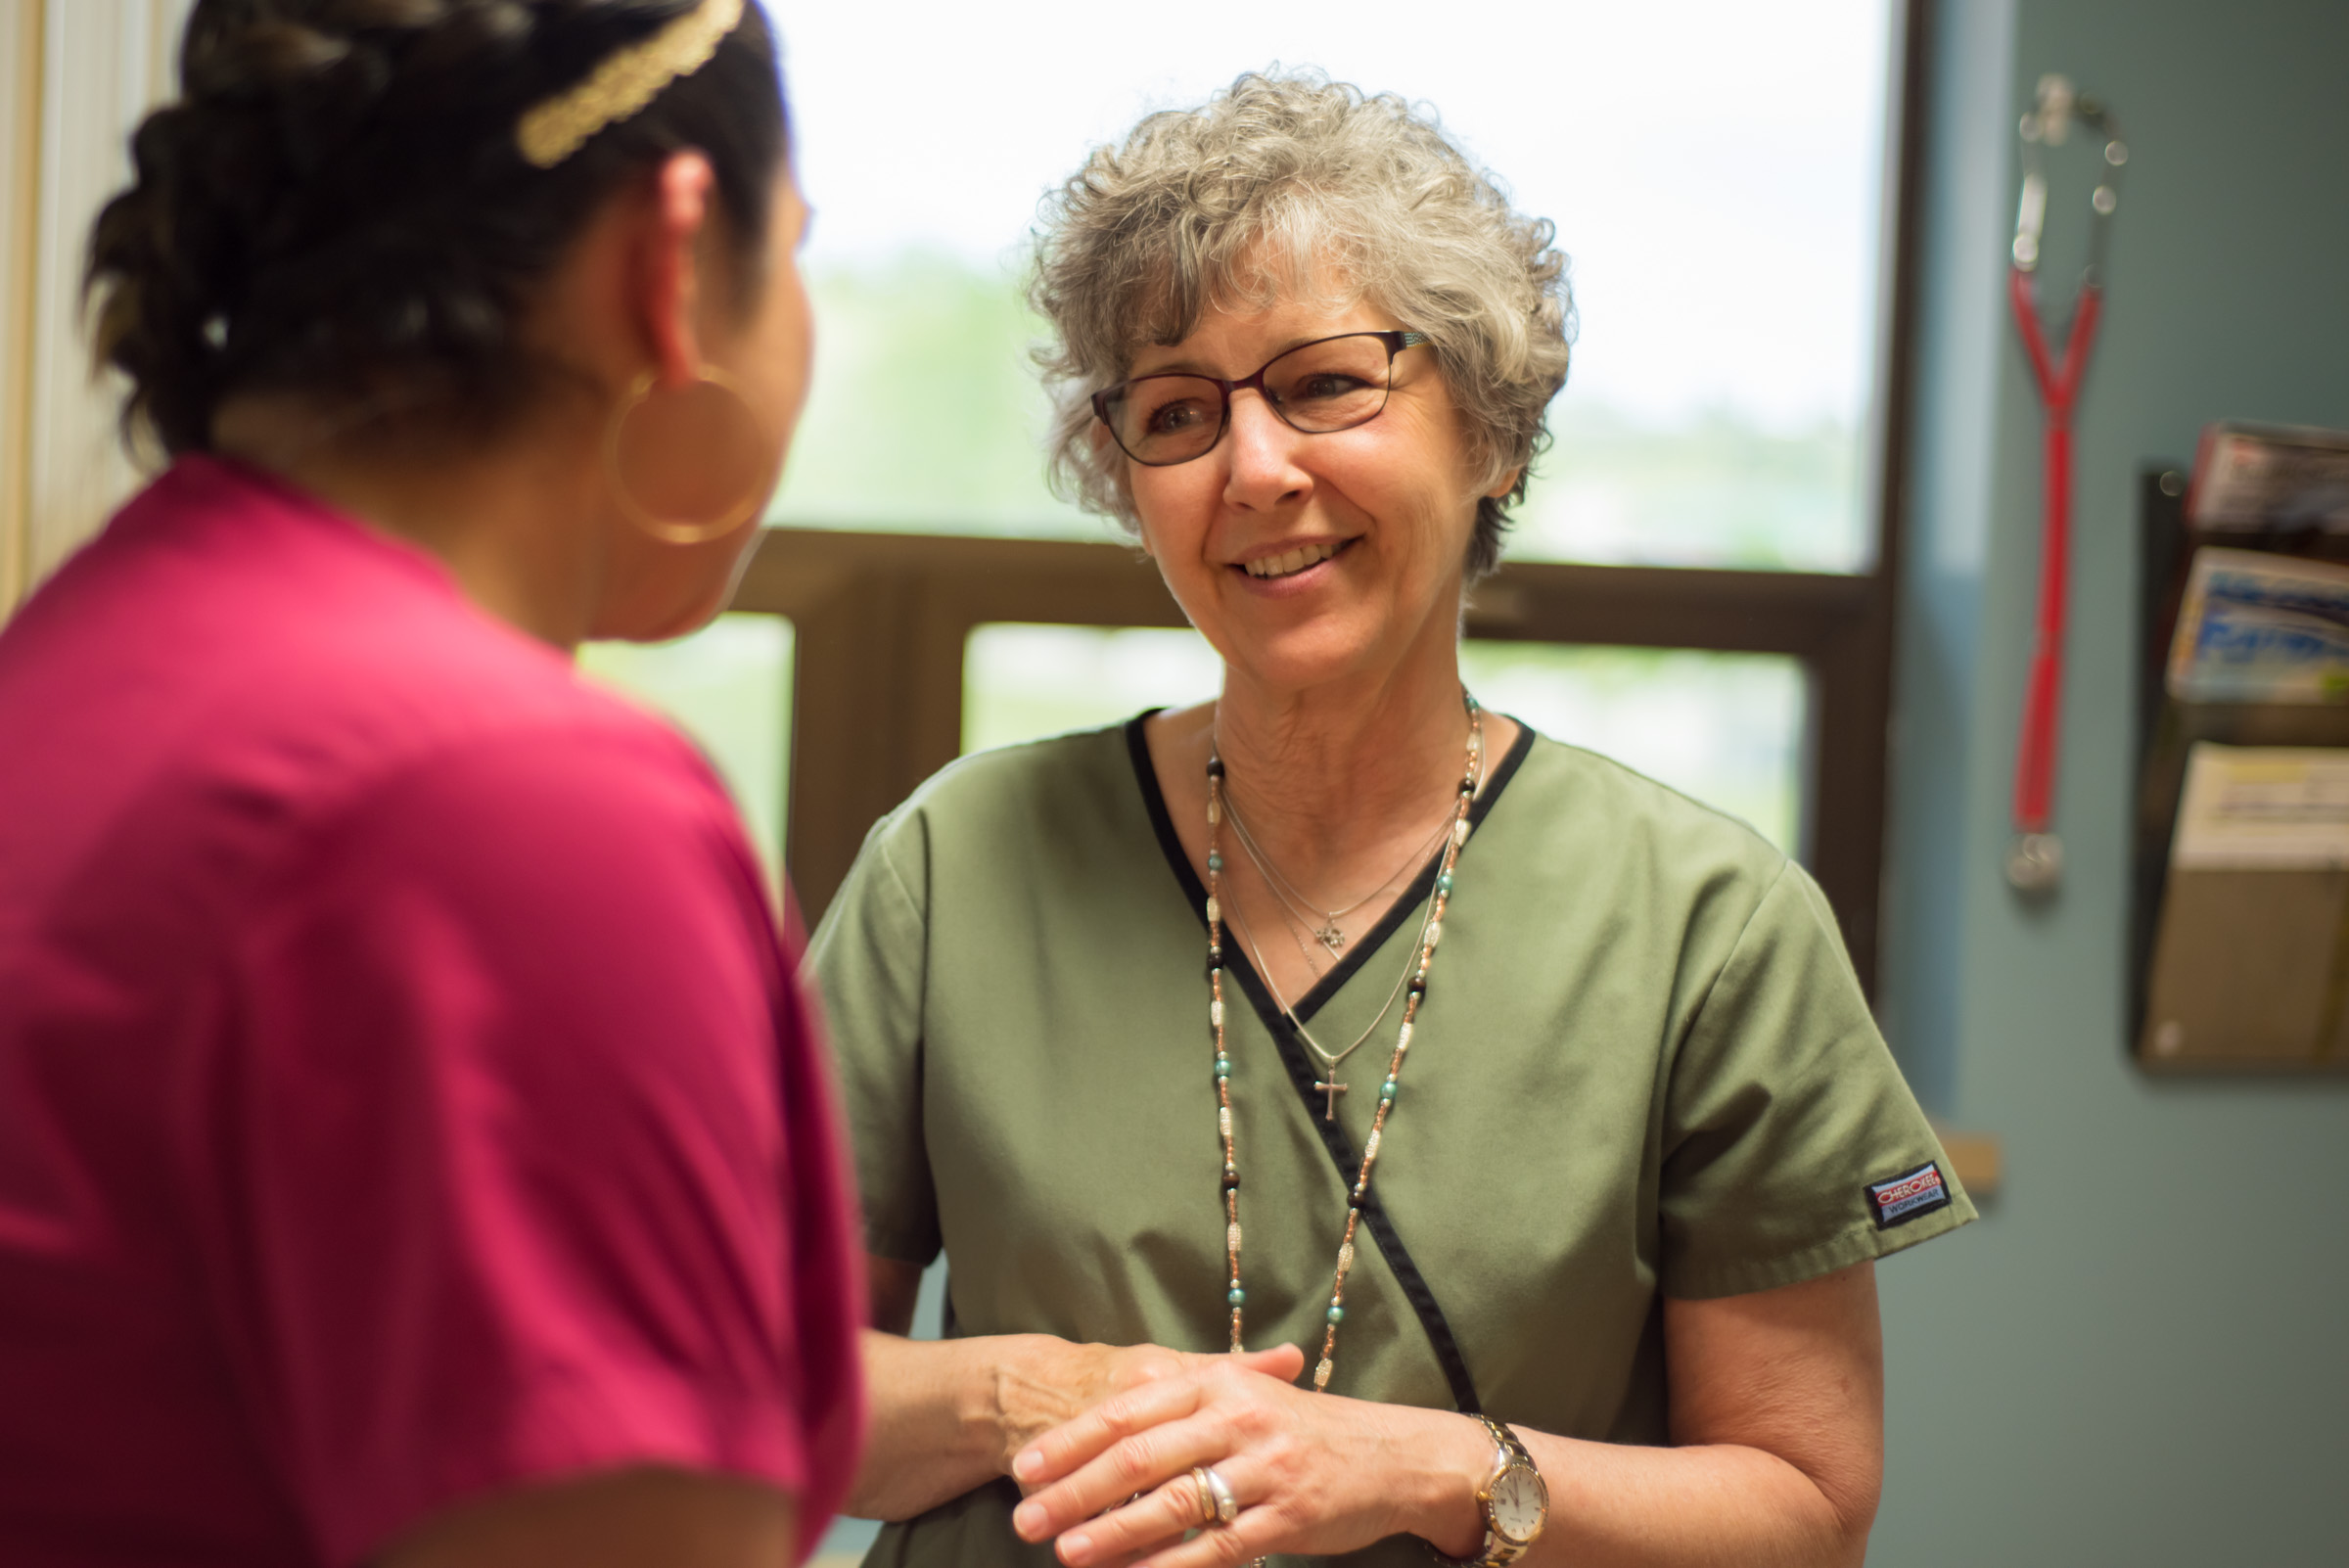 Gynecology at Three Rivers Family Medicine in Brewster